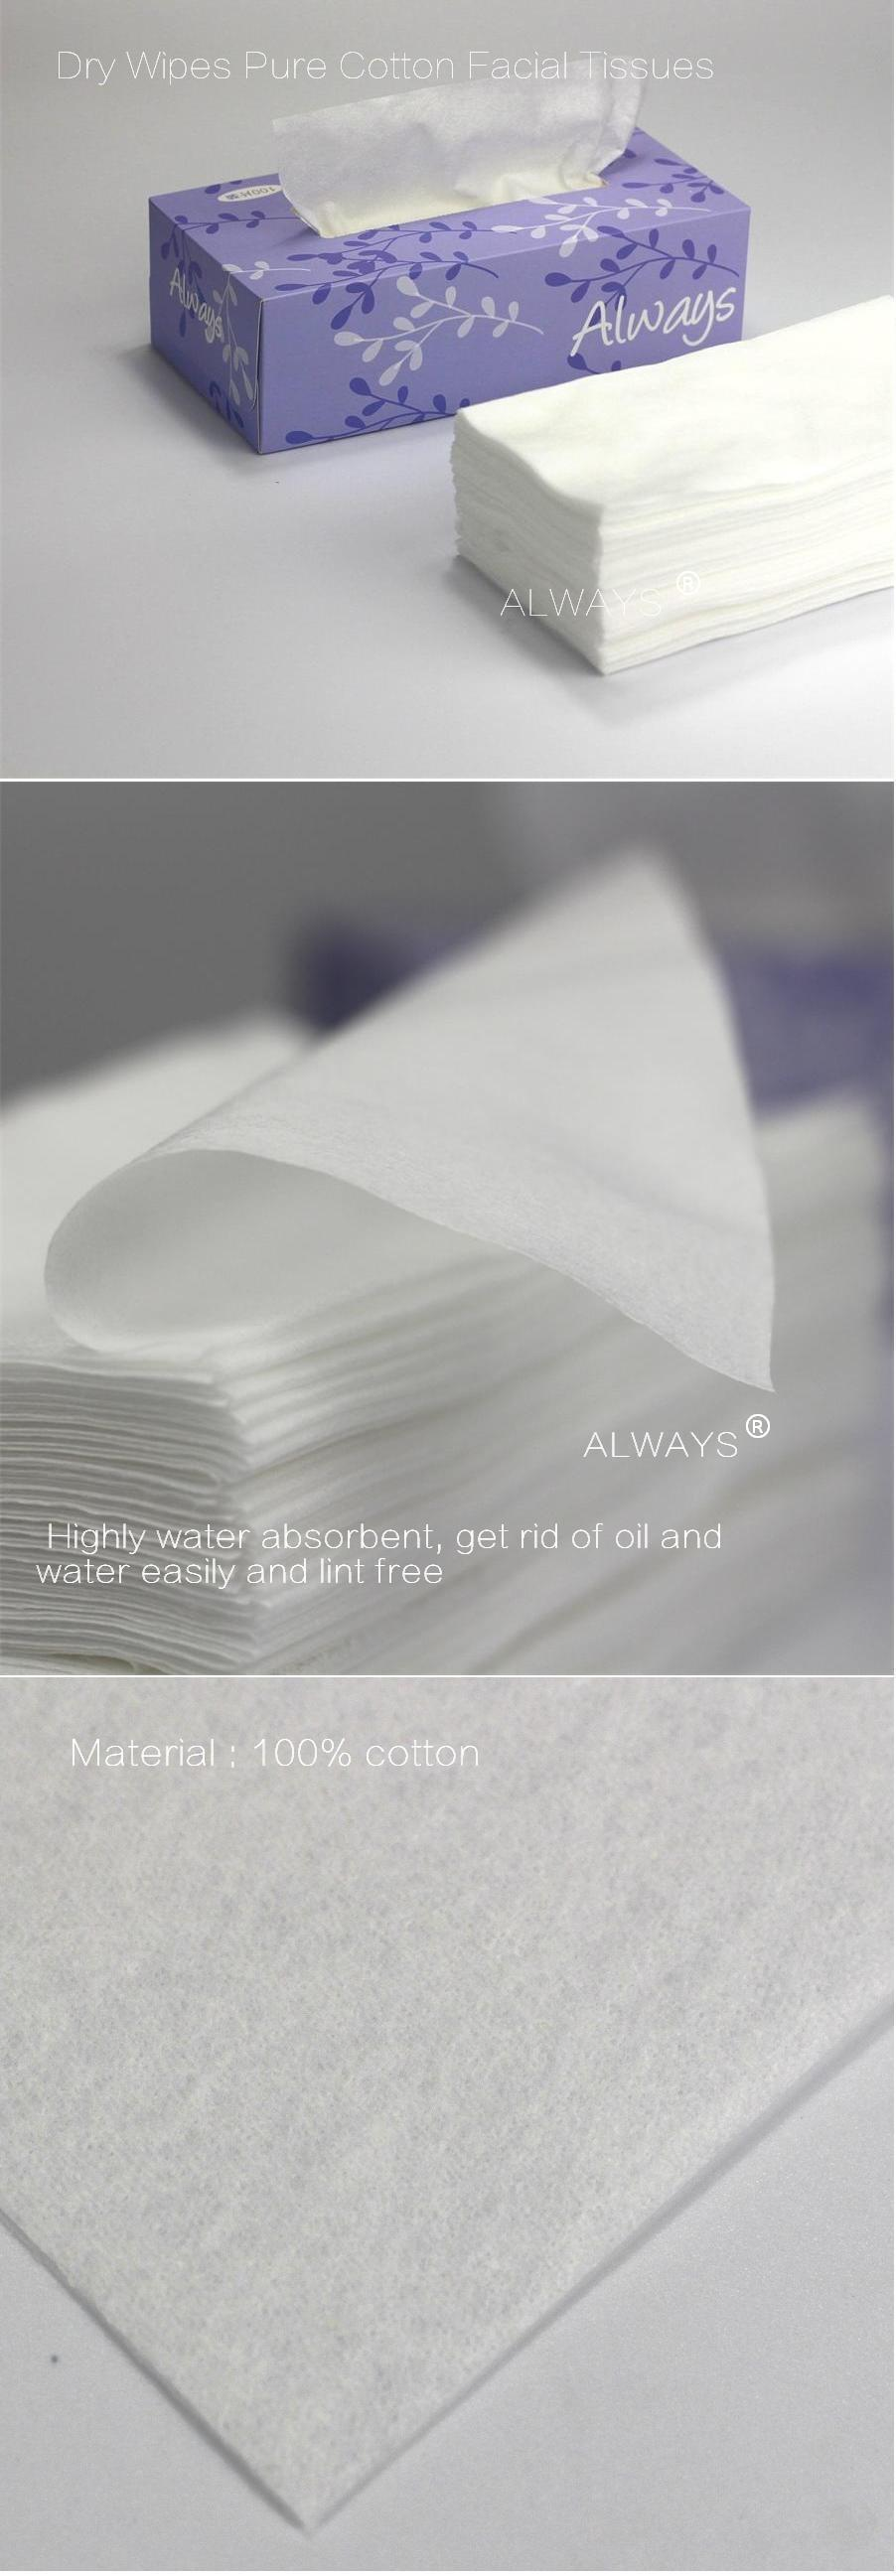 Custom Design Non-woven/Cotton dry wipes & dry baby wipes for white color